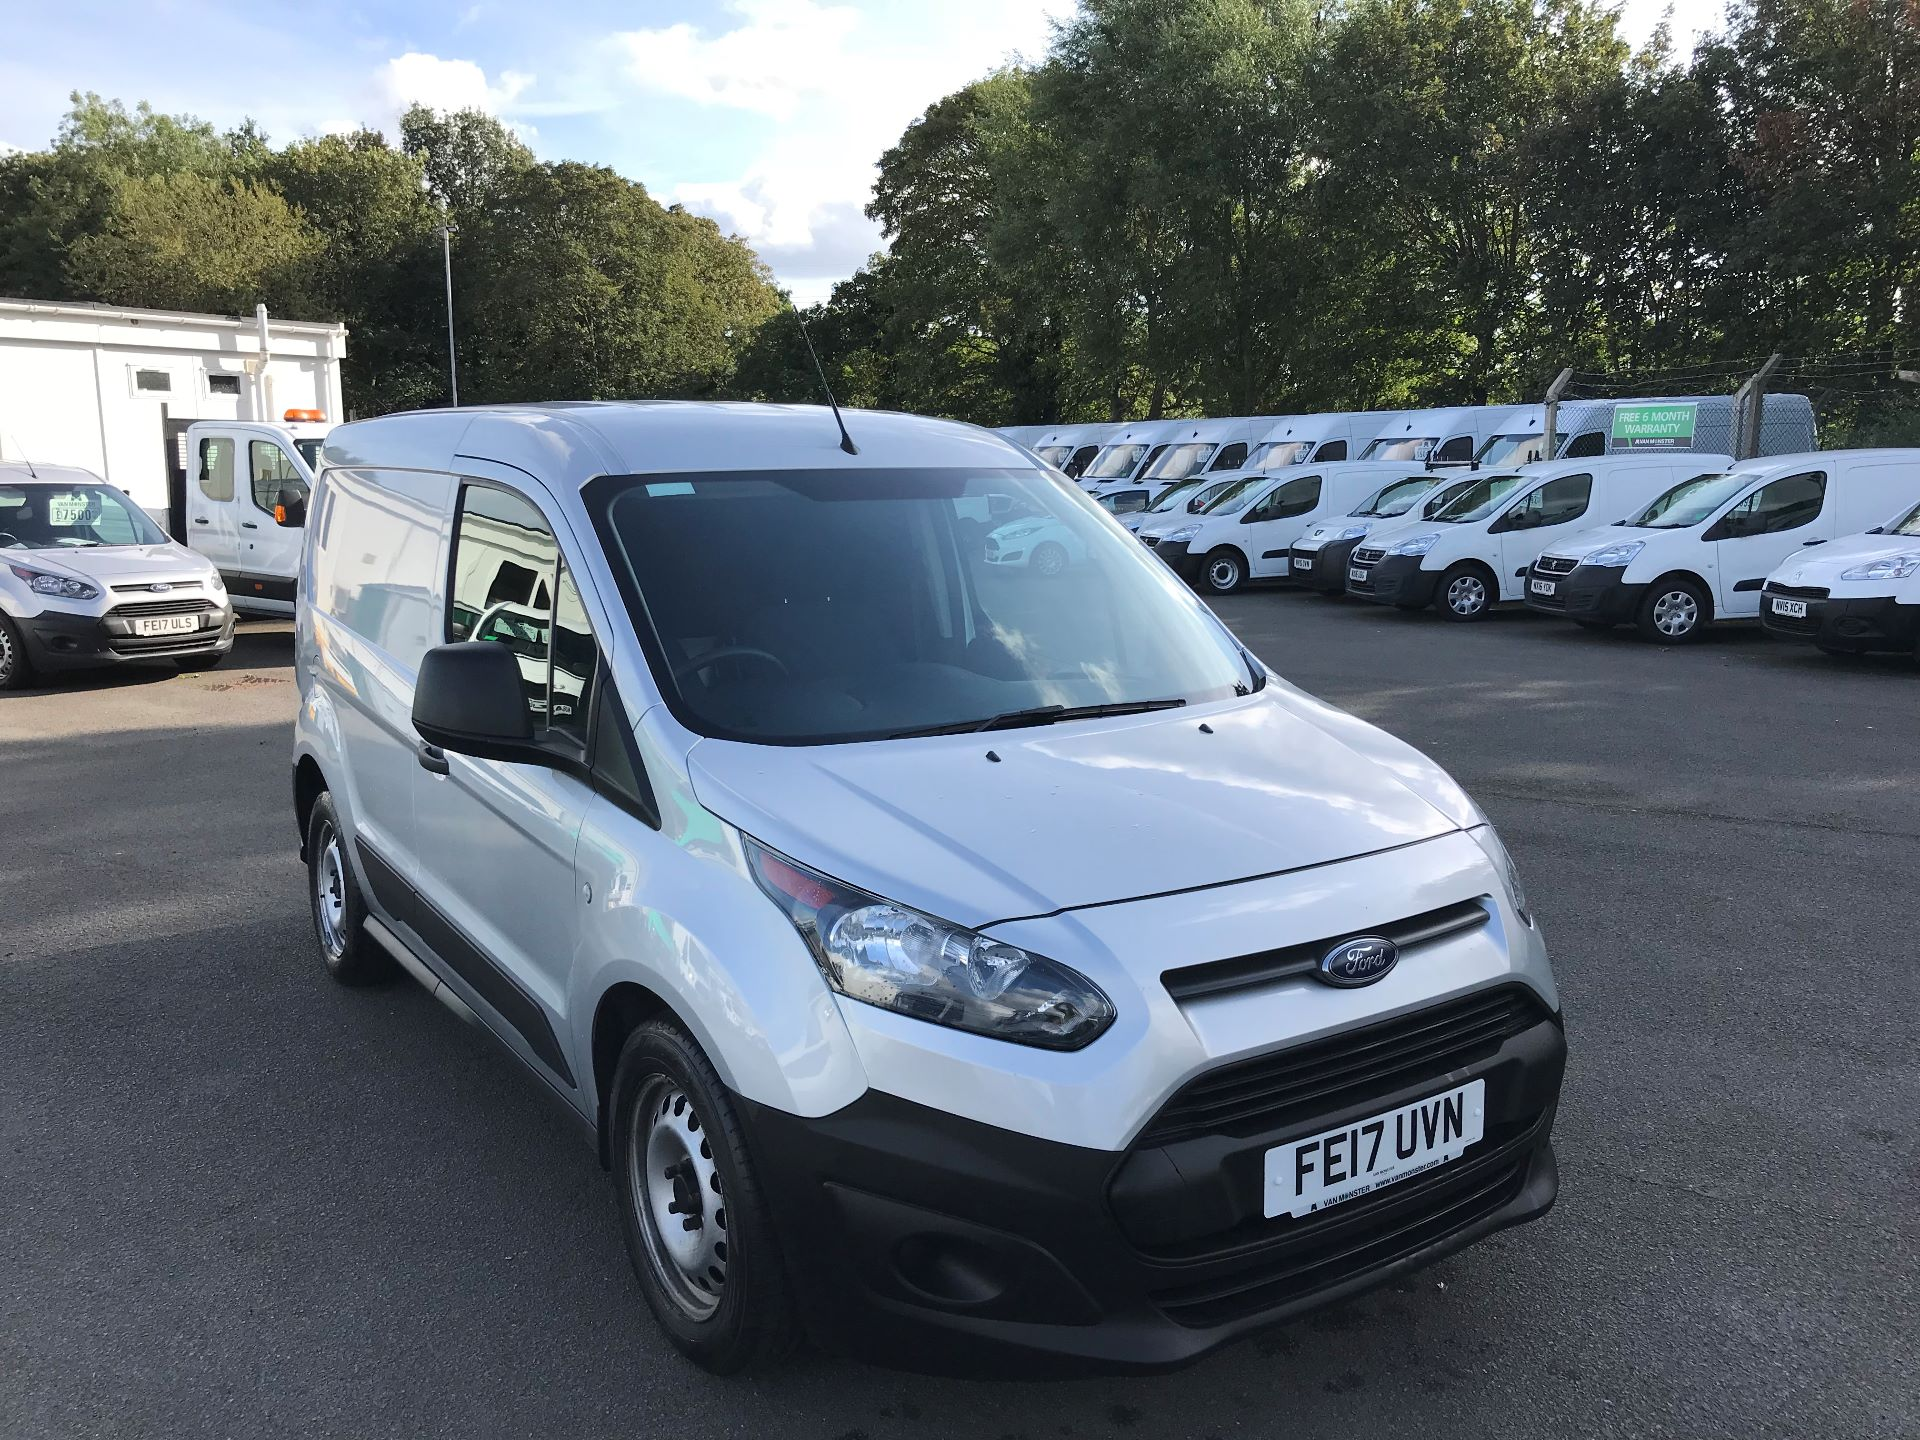 2017 Ford Transit Connect  220 L1 Diesel 1.5 TDCi 75PS Van EURO 6 (FE17UVN)